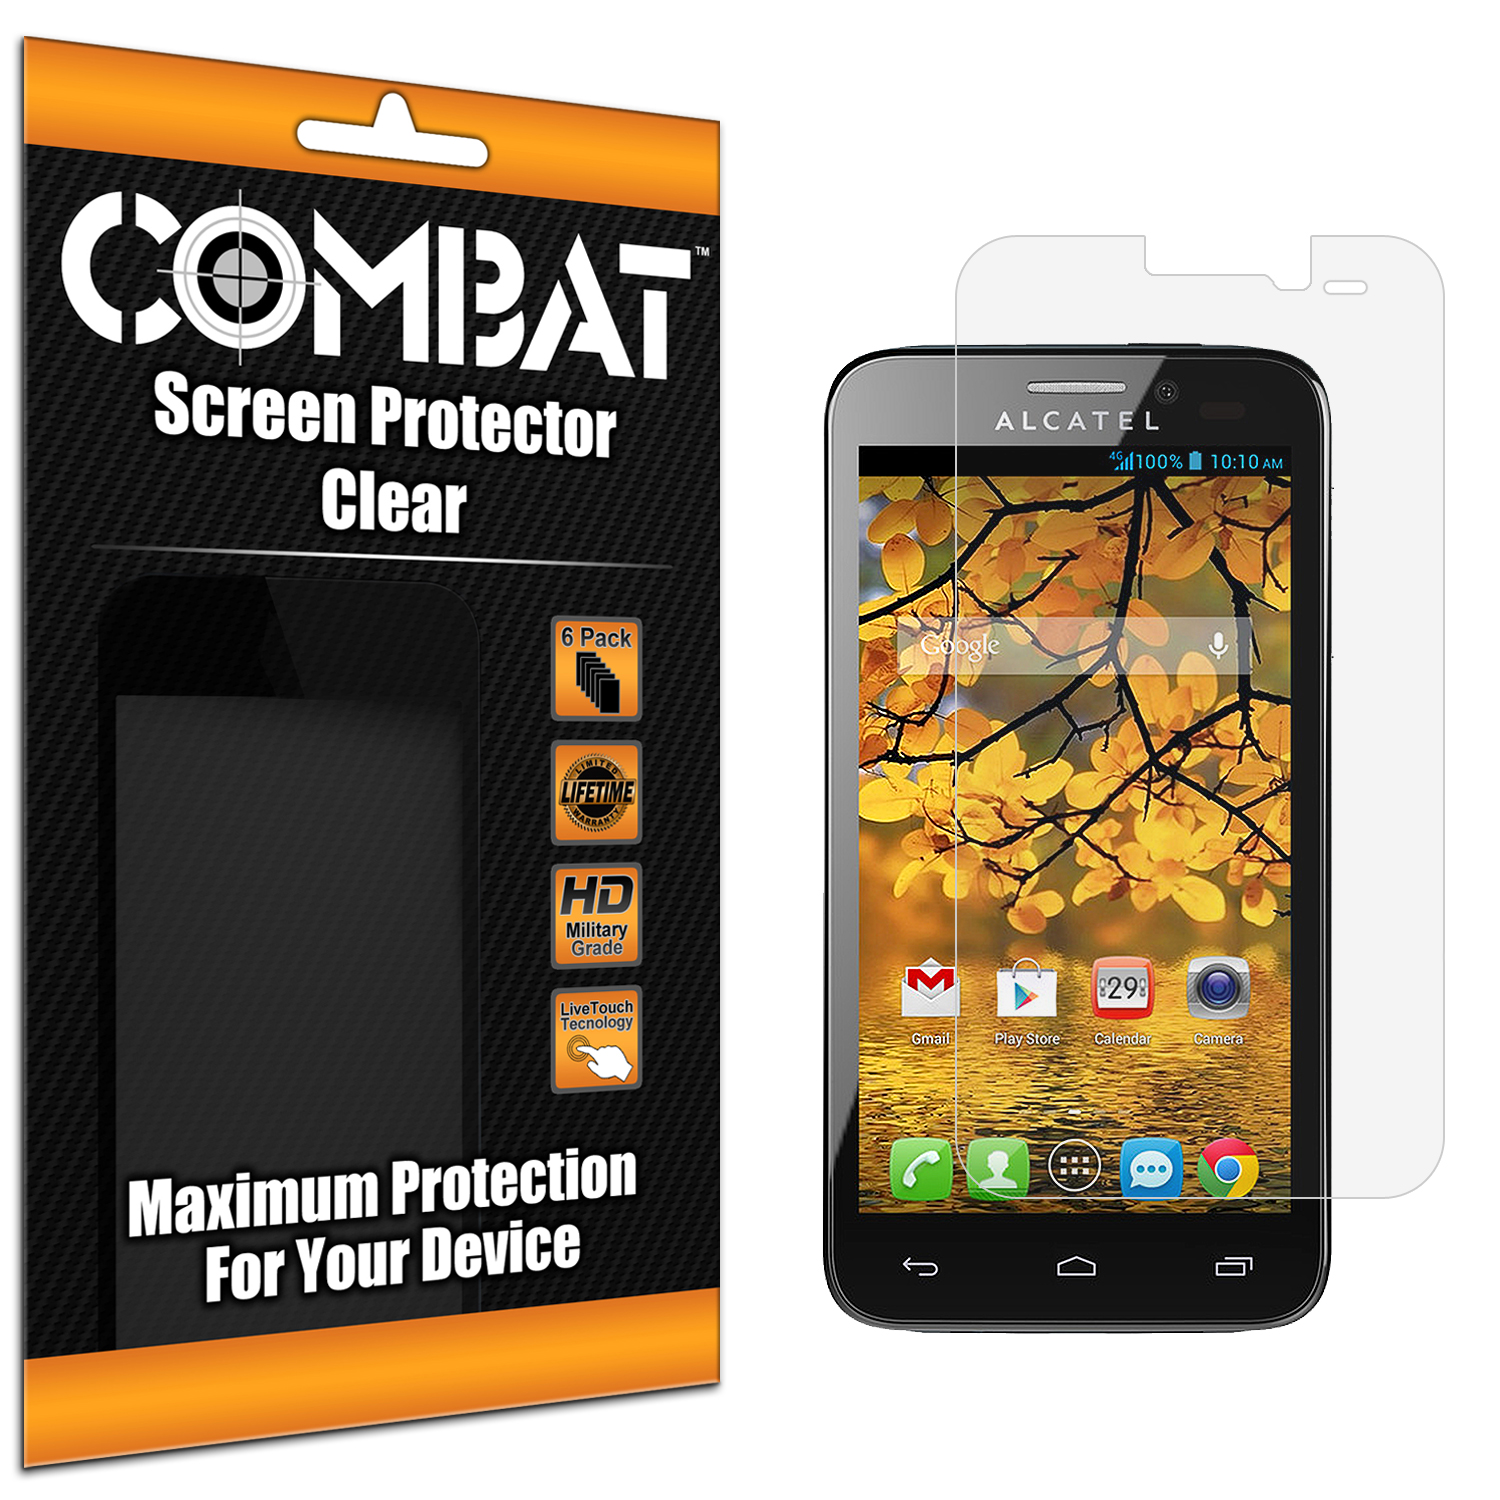 Alcatel One Touch Fierce 7024W Combat 6 Pack HD Clear Screen Protector